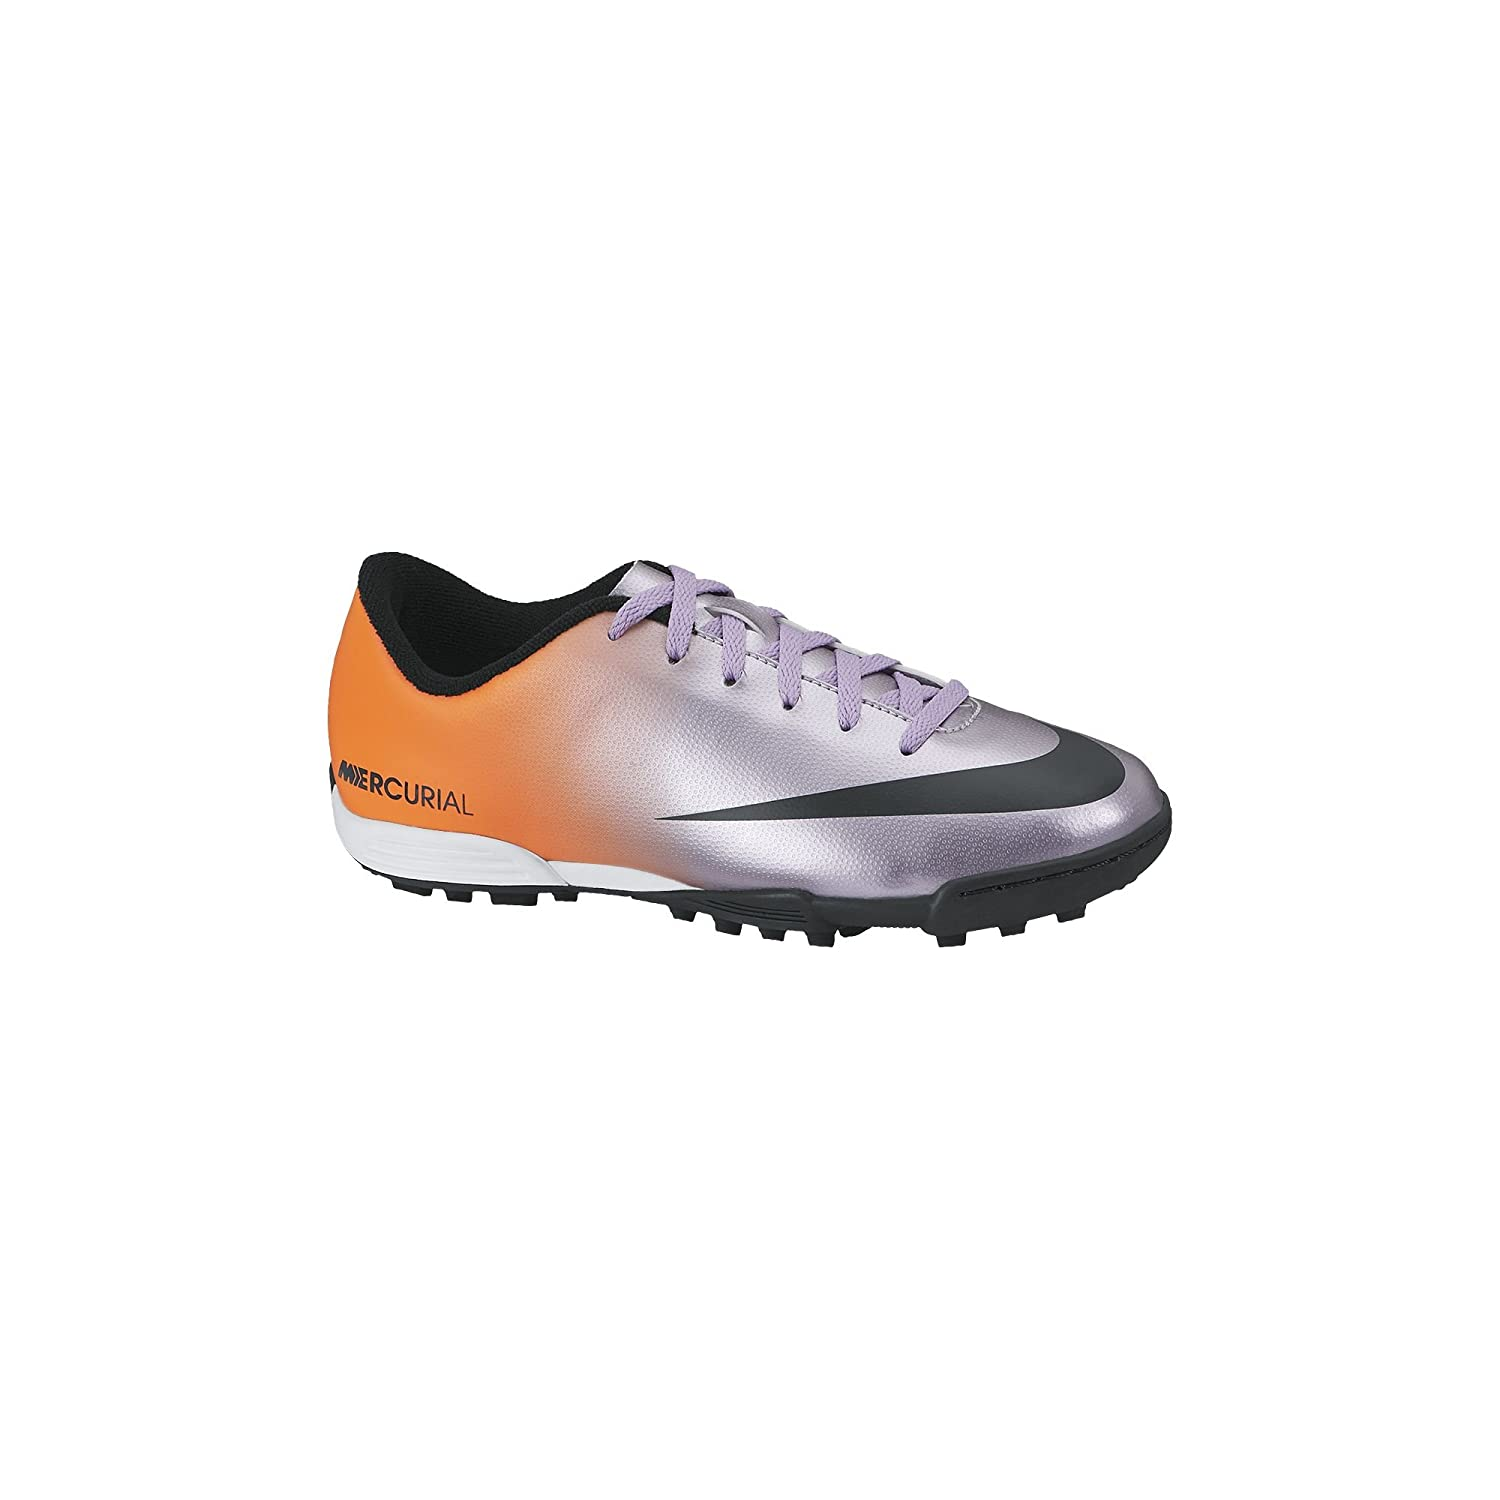 Nike JR Mercurial Vortex TF Stivali